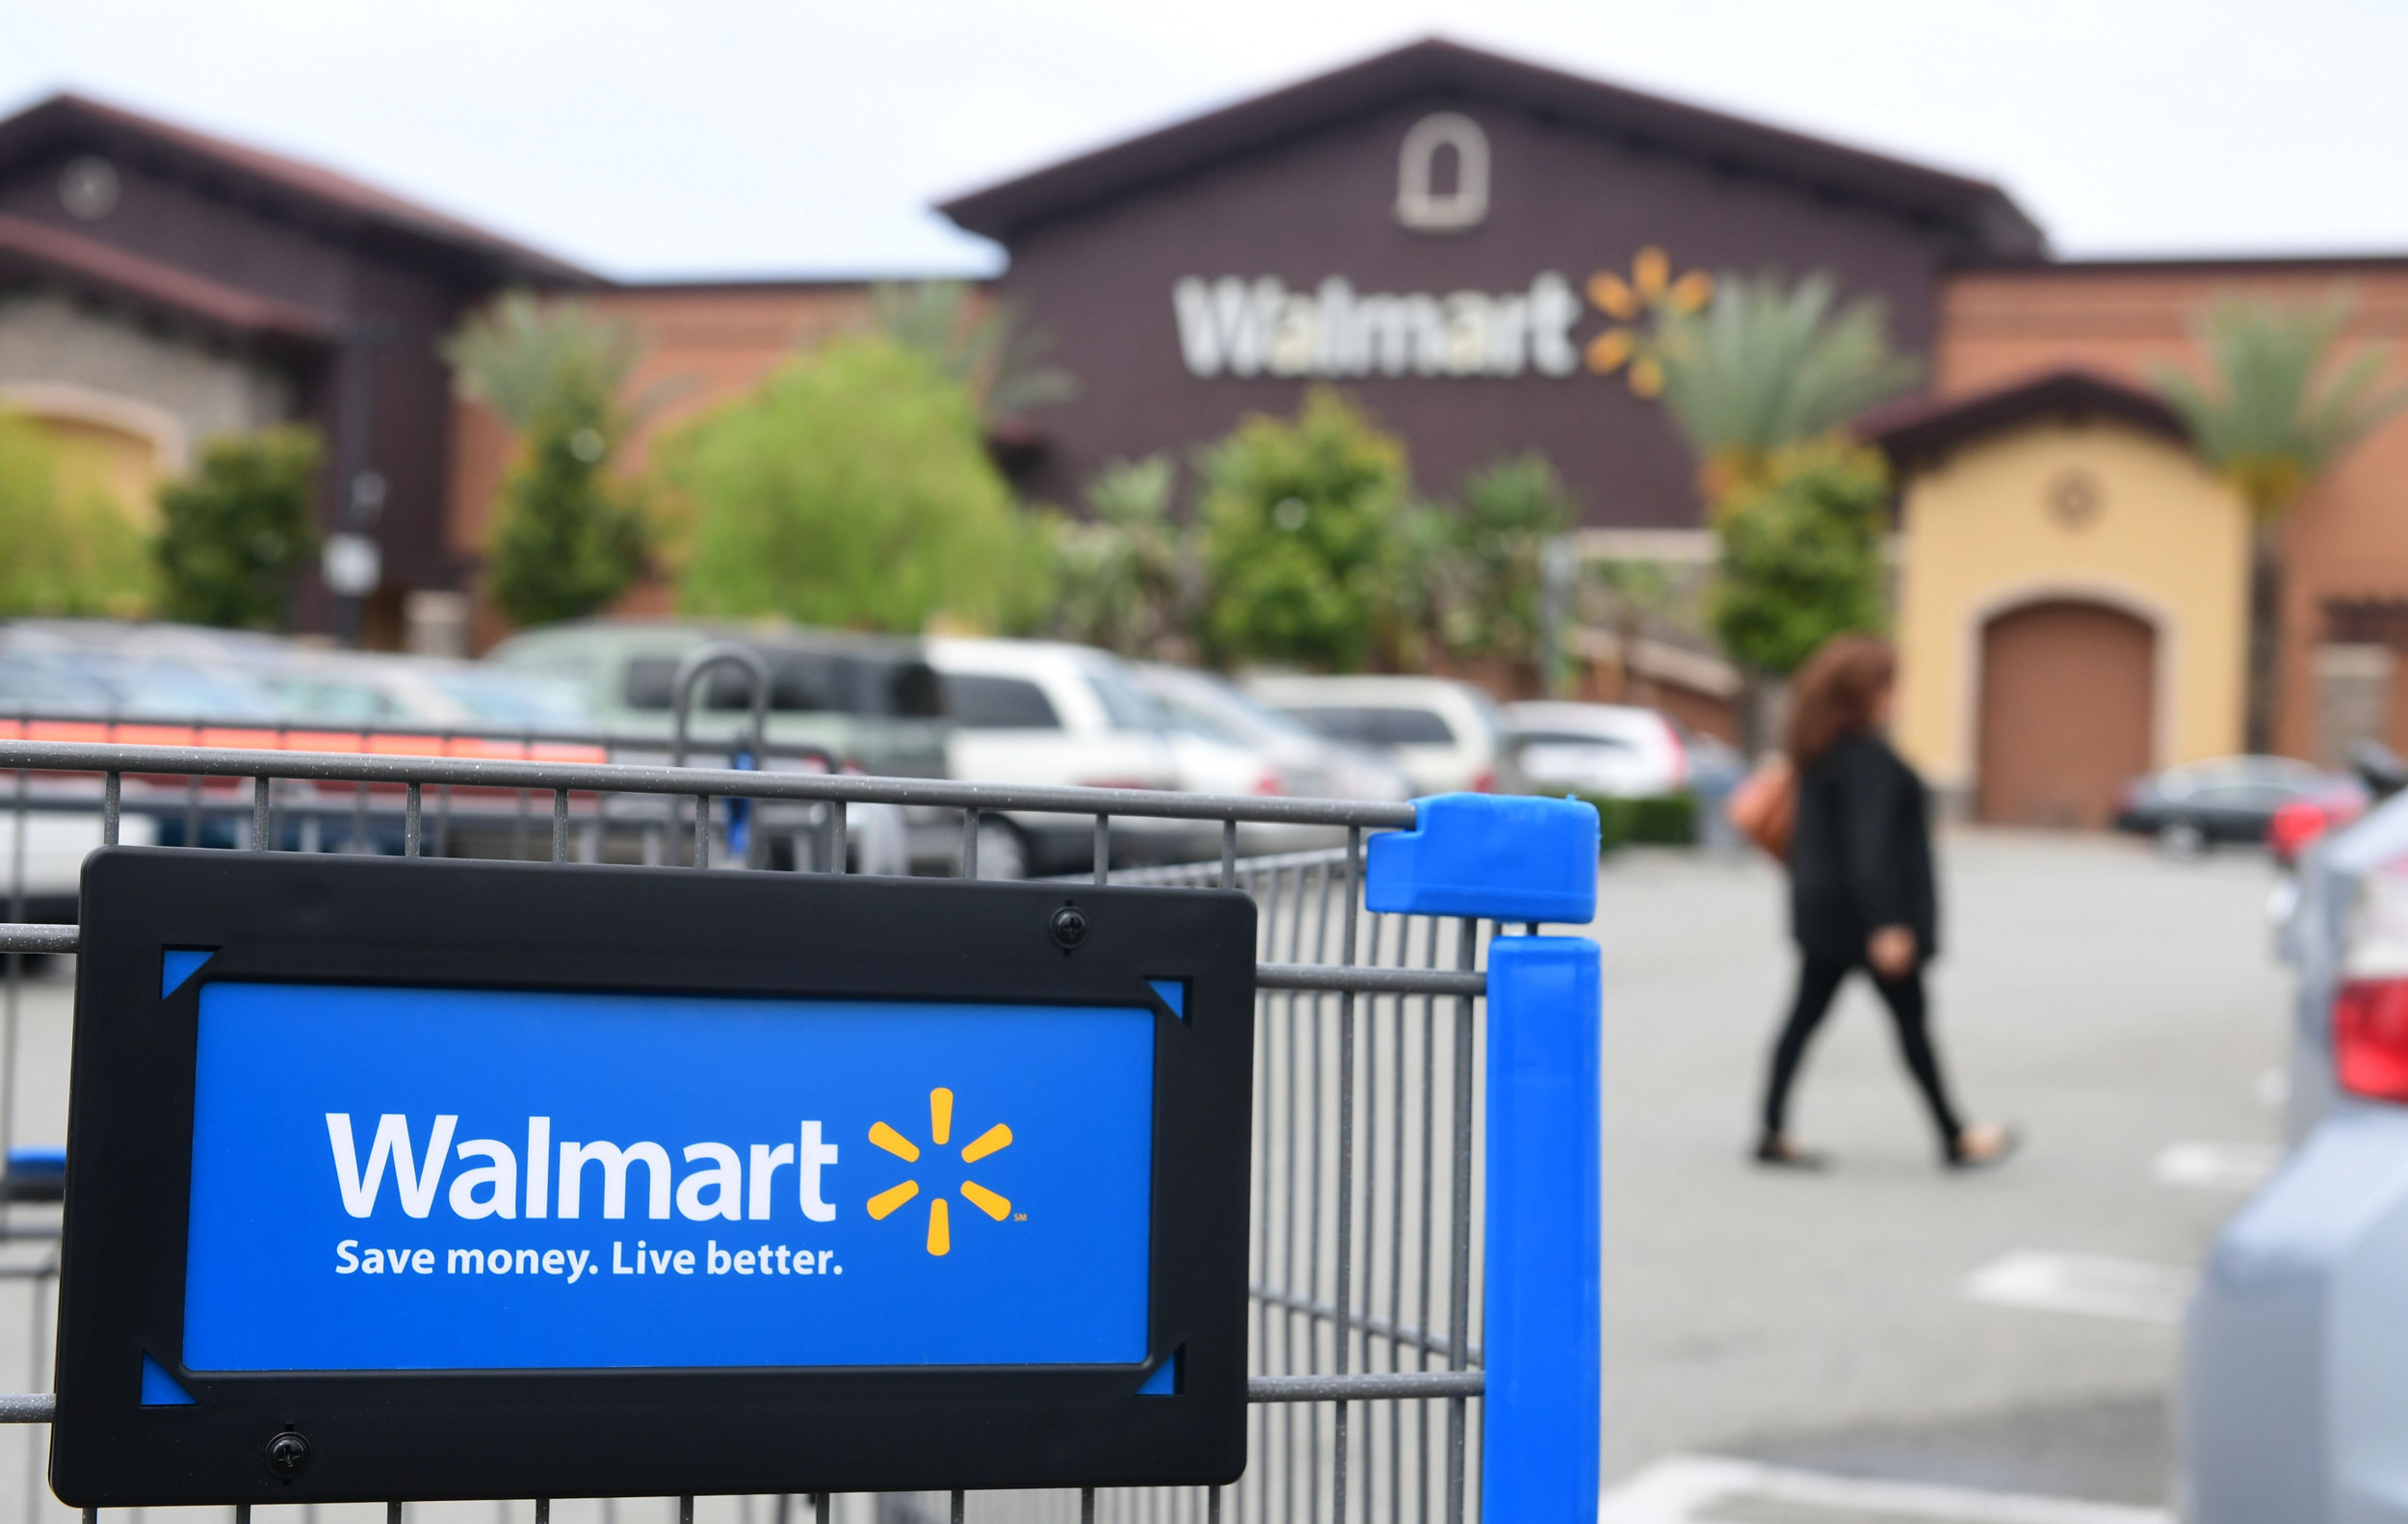 Walmart Employees Flood Reddit With Pro-Union Memes To